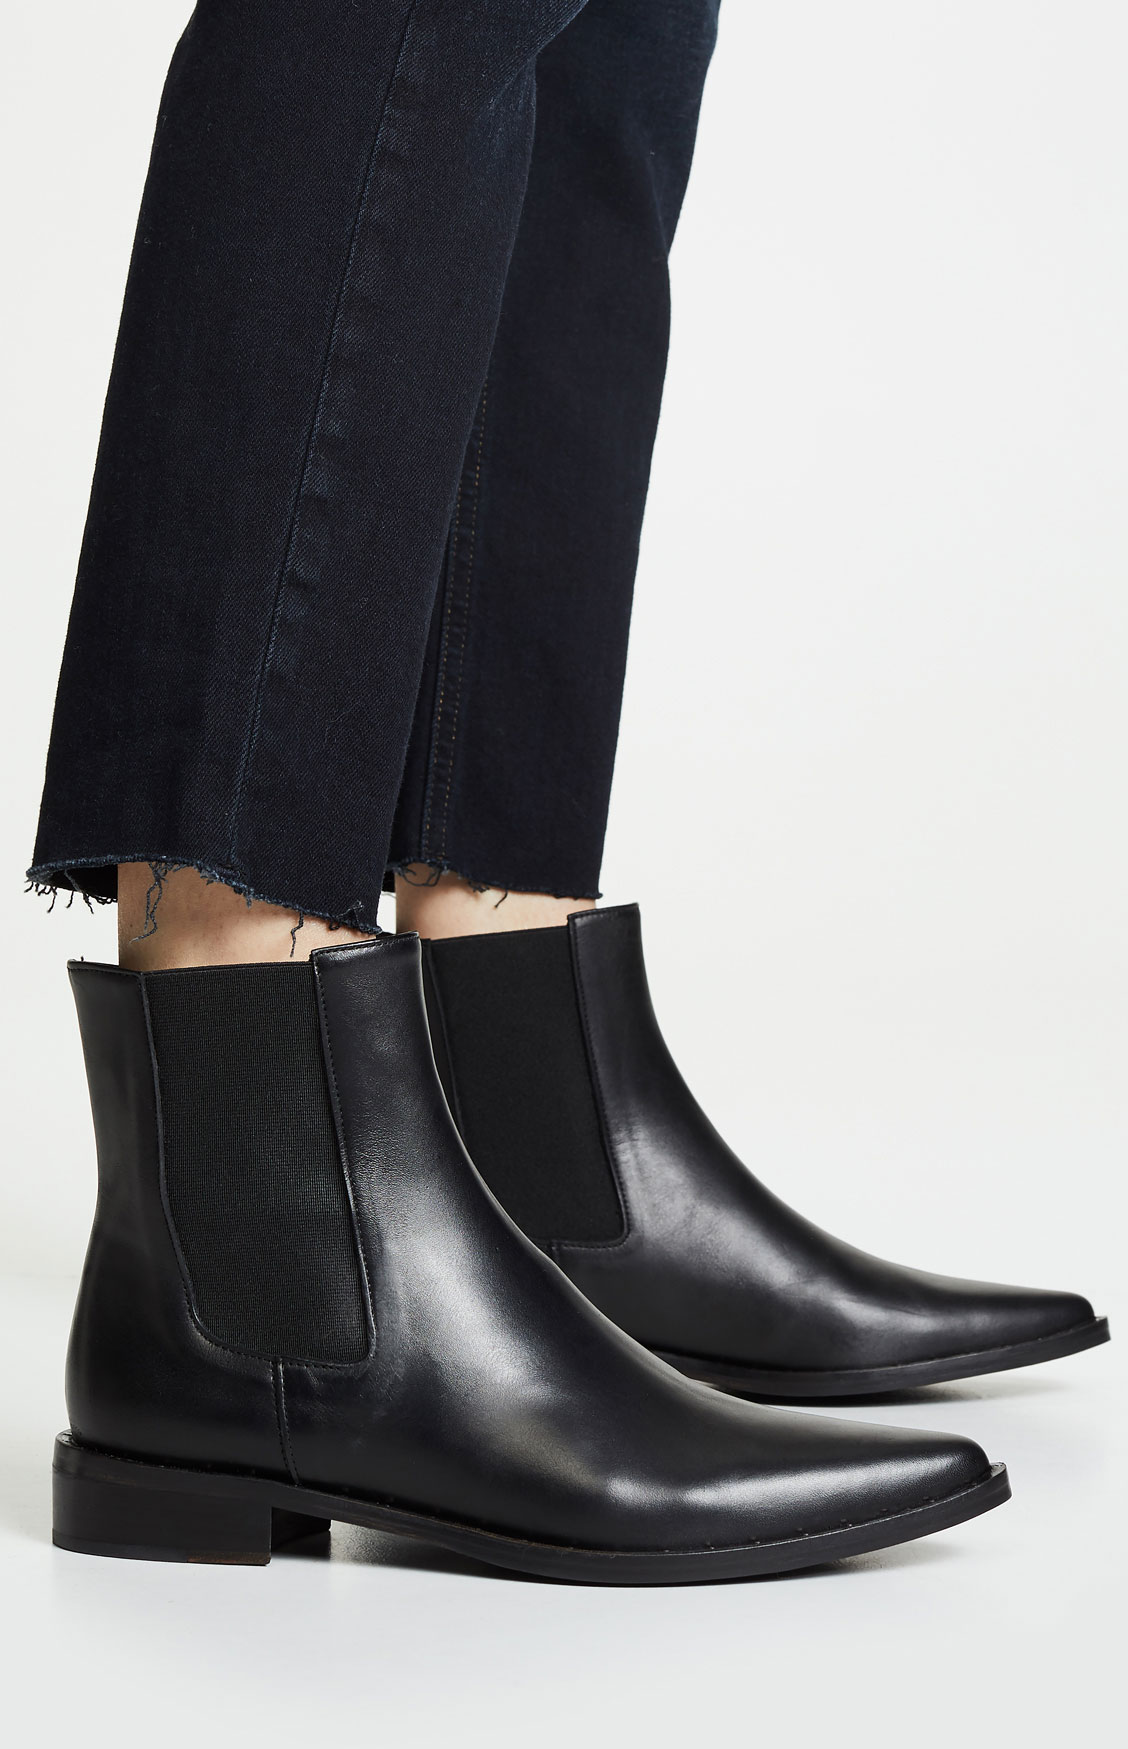 Freda Salvador Joan Pointed Toe Chelsea Boots